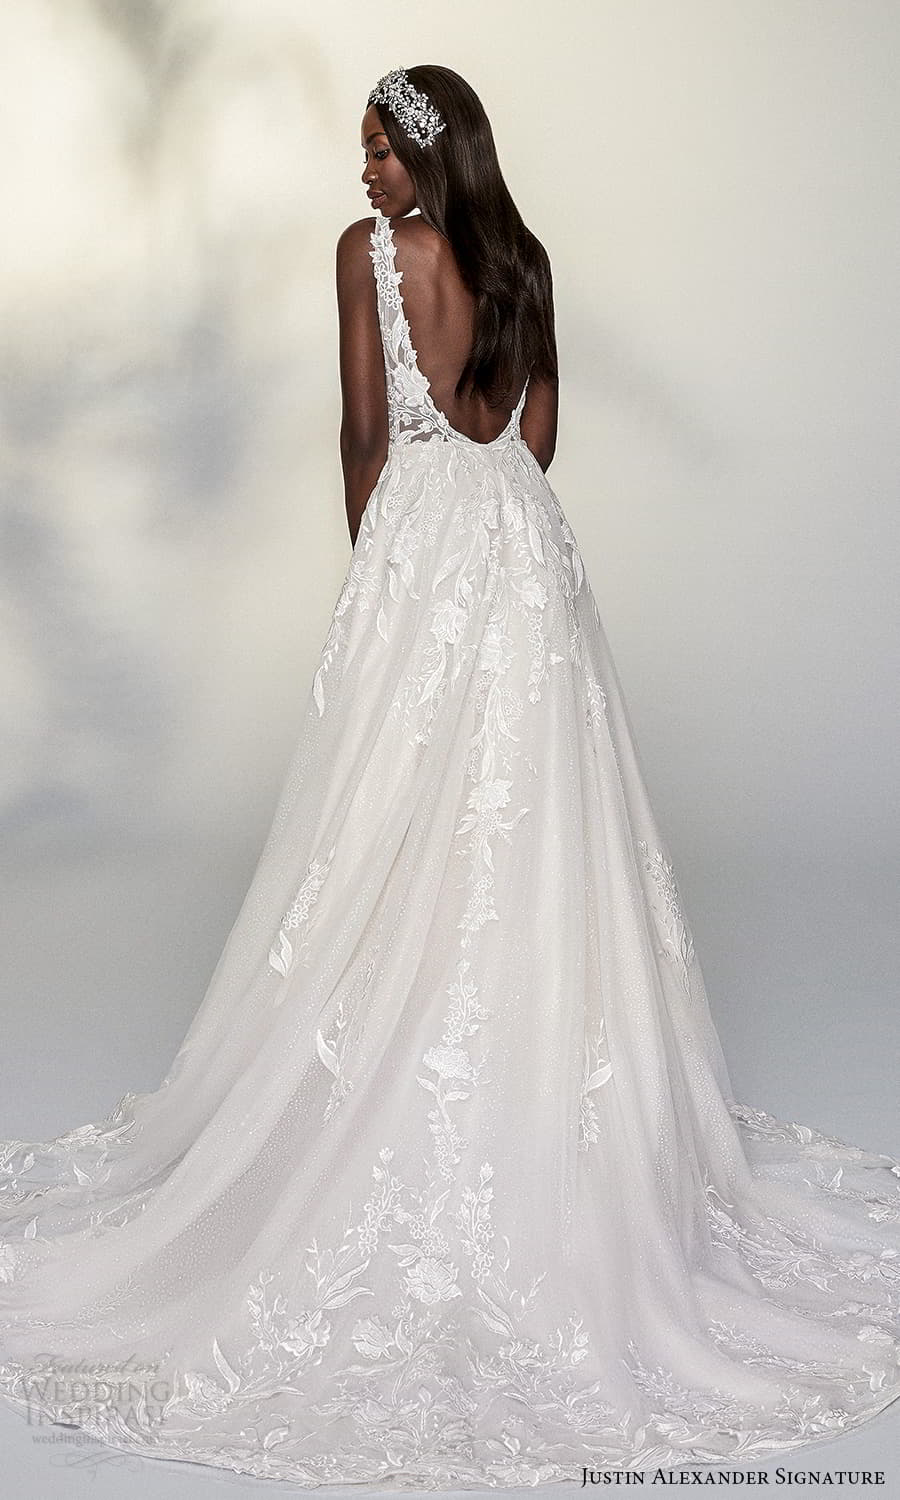 justin alexander signature spring 2022 bridal sleeveless straps plunging v sweetheart neckline fully embellished lace a line ball gown wedding dress chapel train (10) bv